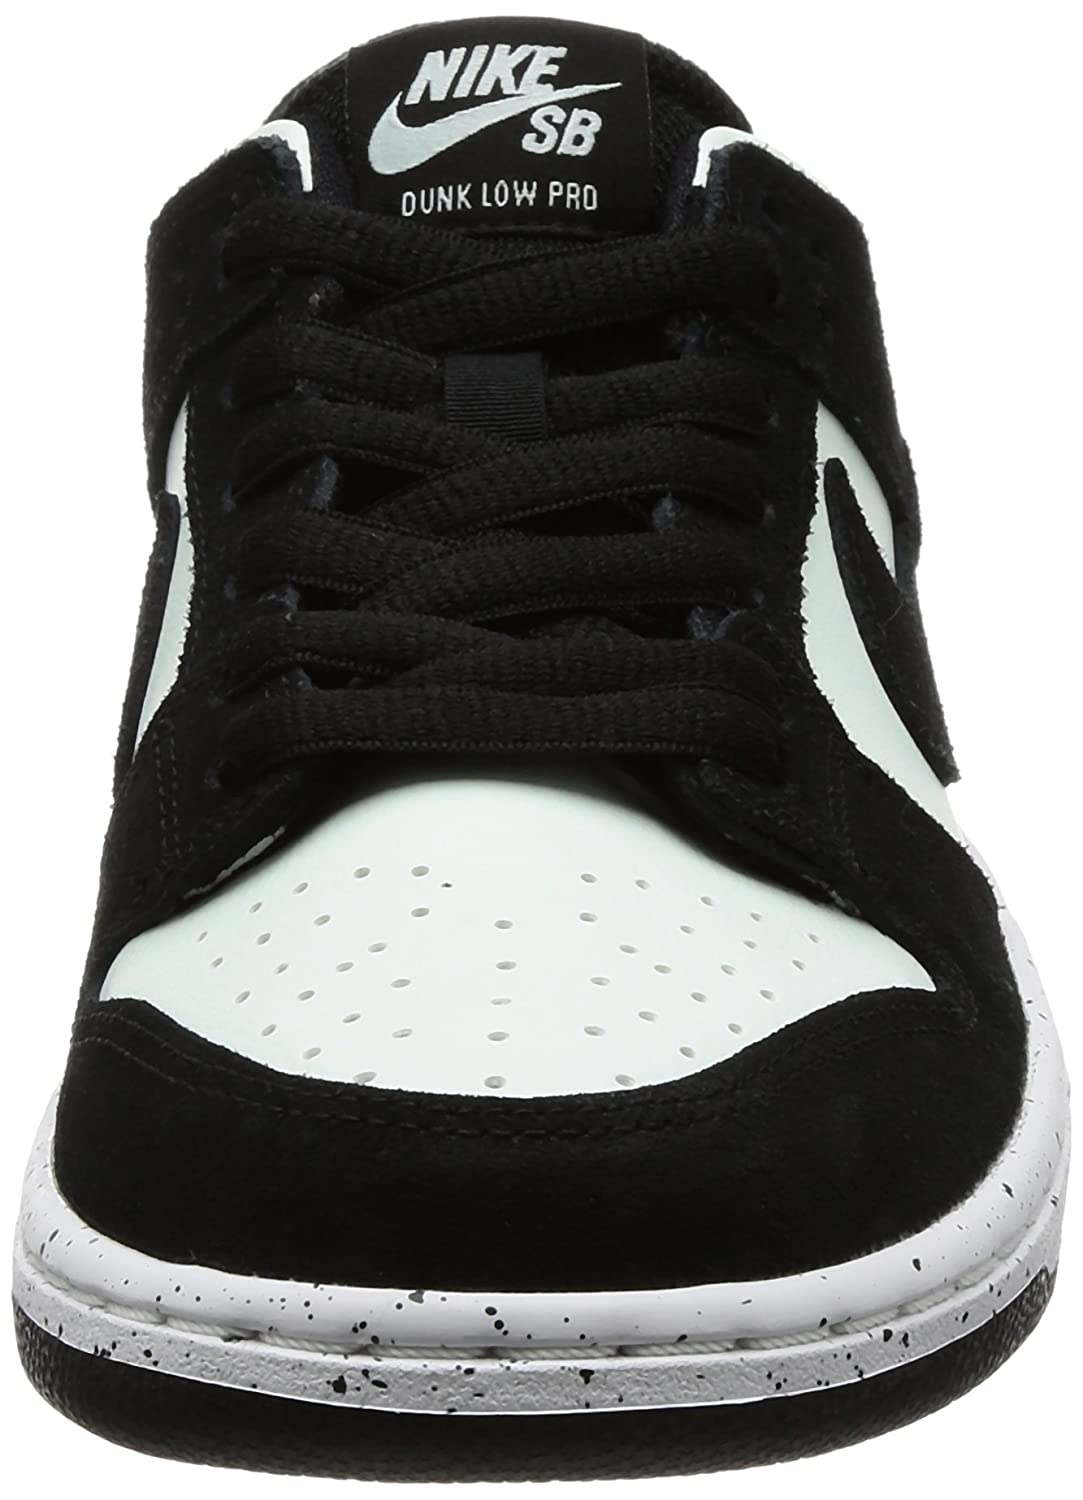 wholesale dealer 86f5e ce44c Amazon.com   Nike Men s SB Zoom Dunk Low Pro Skate Shoe   Skateboarding